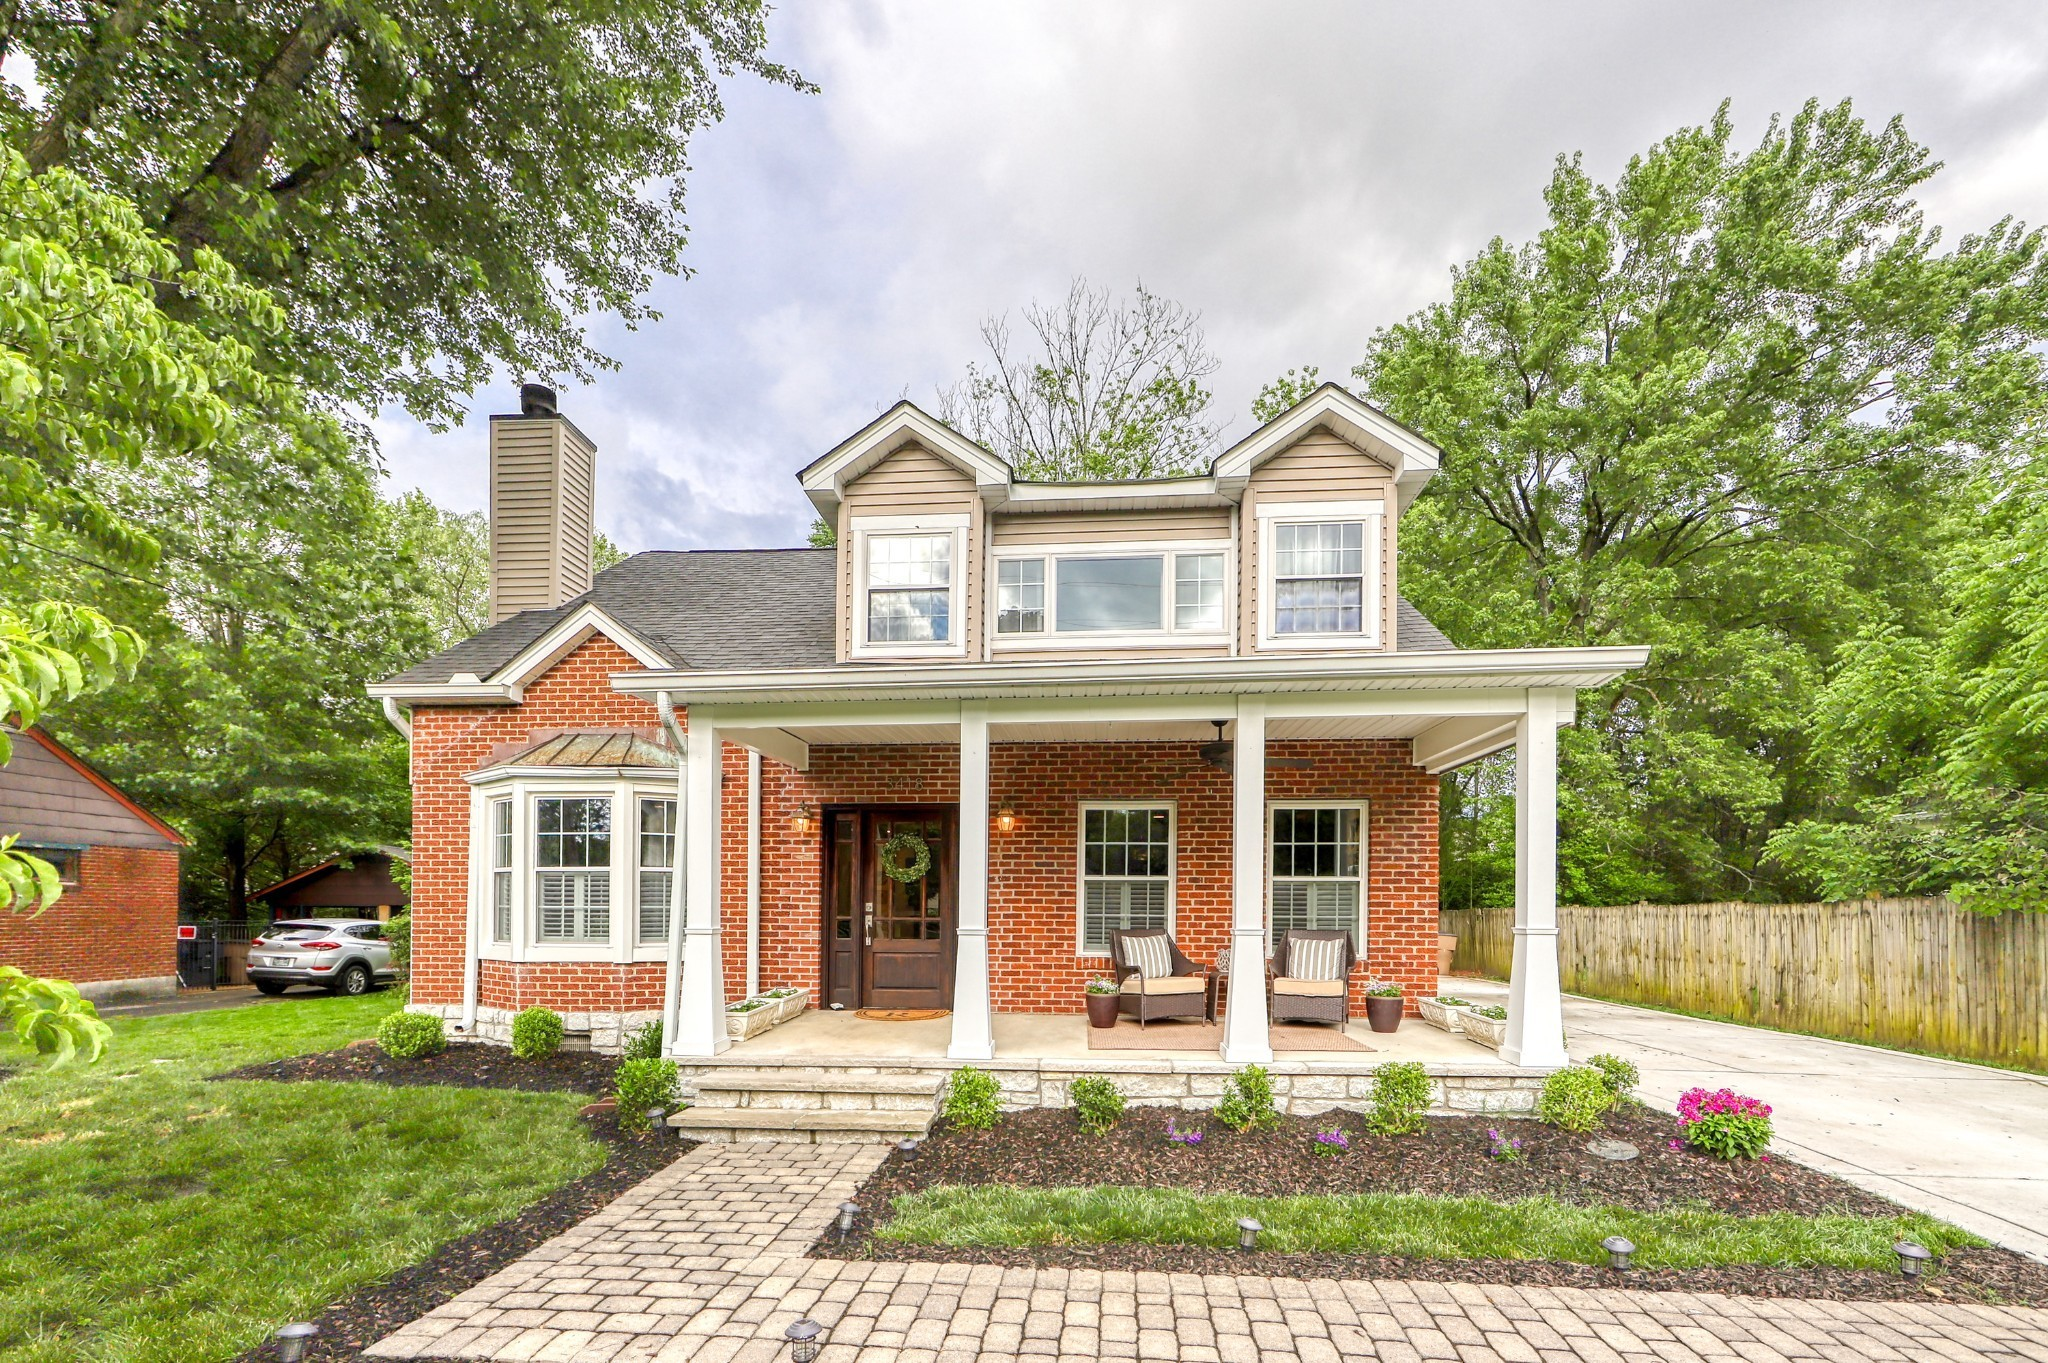 3418 Pleasant Valley Rd Property Photo - Nashville, TN real estate listing